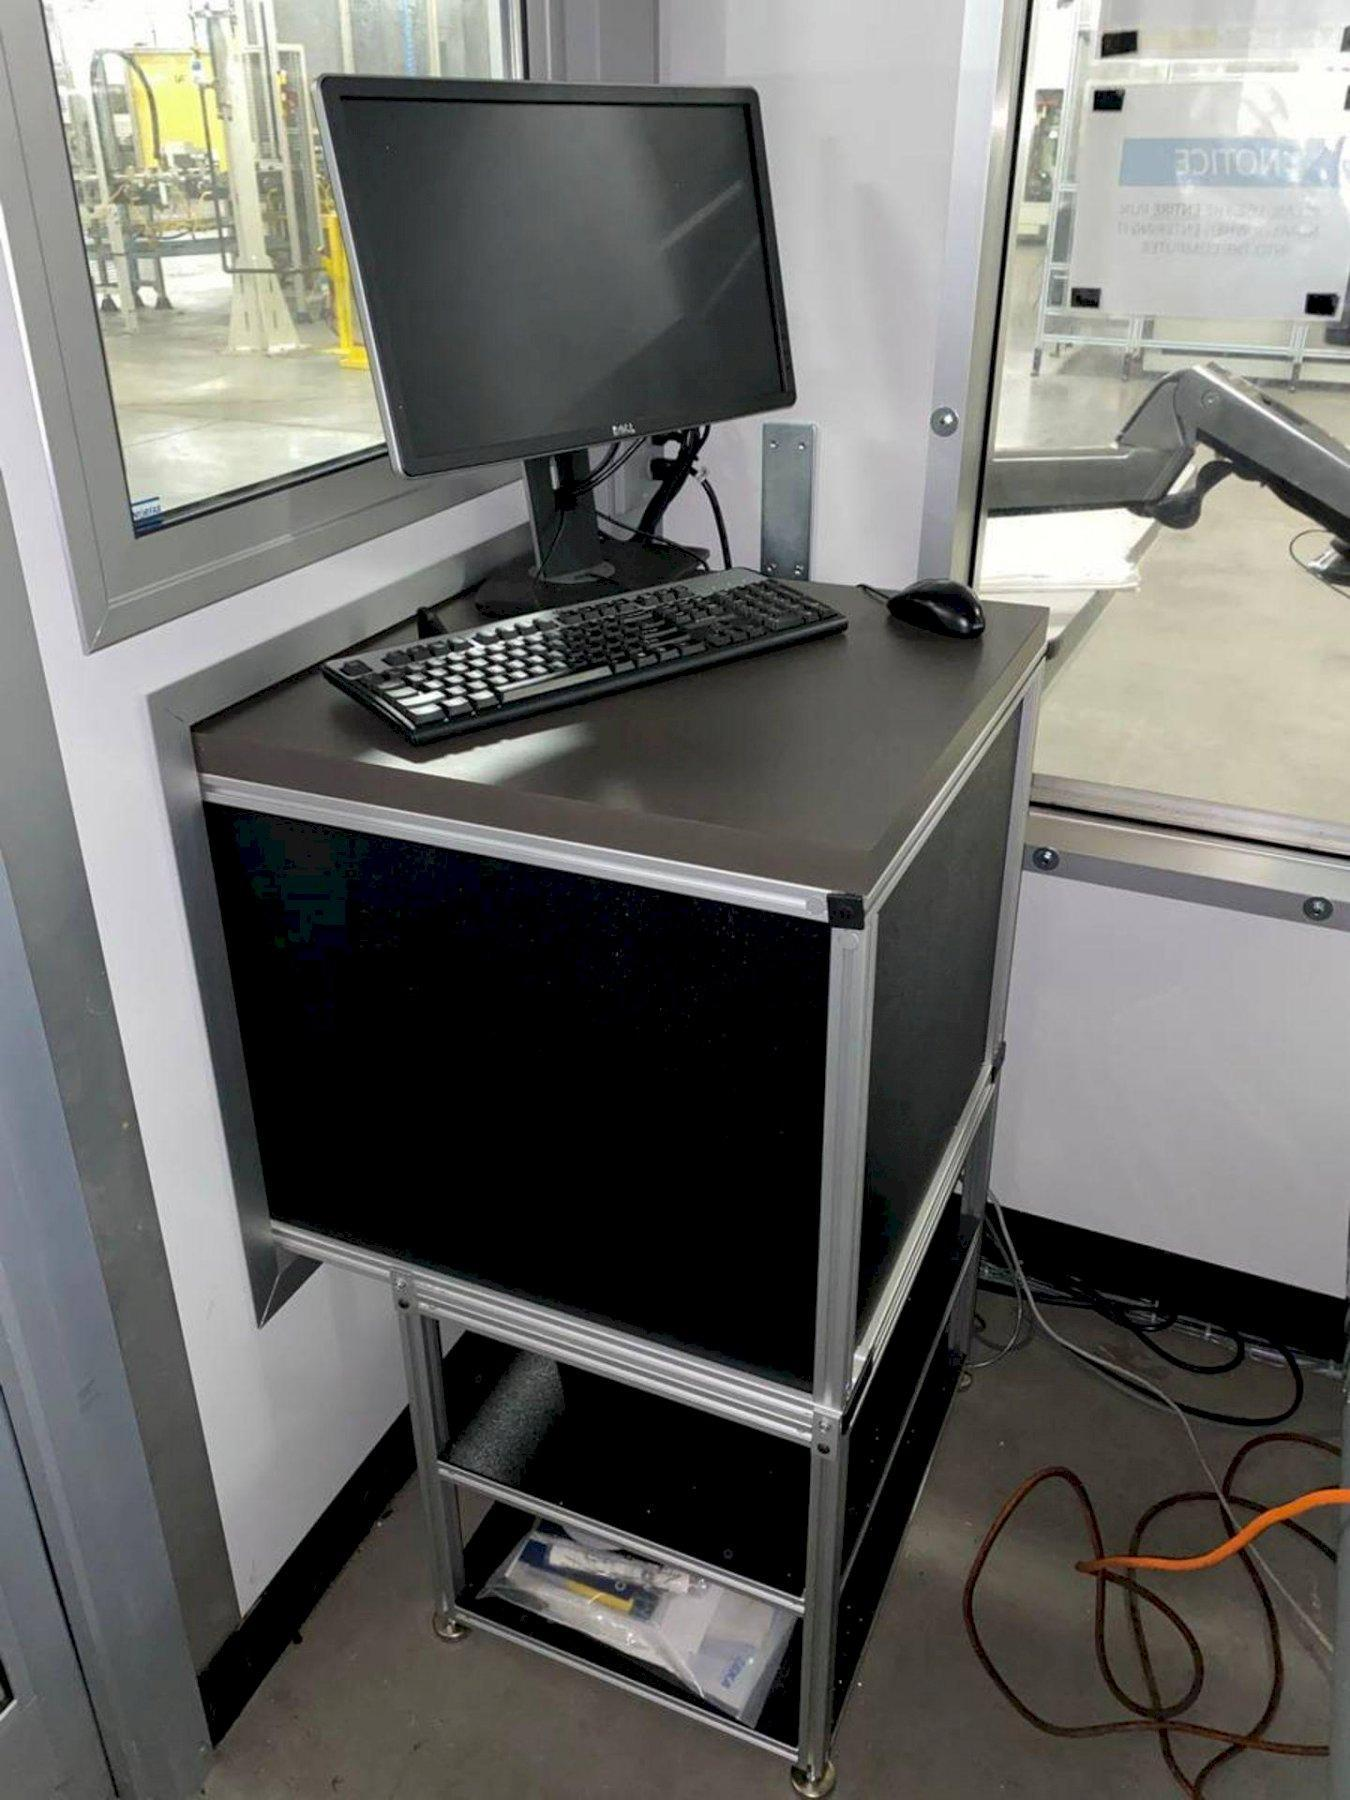 BROWN & SHARPE2014 BROWN & SHARPE GLOBAL ADVANTAGE 9/15/8 DCC COORDINATE MEASURING MACHINE(CMM) (#33187)